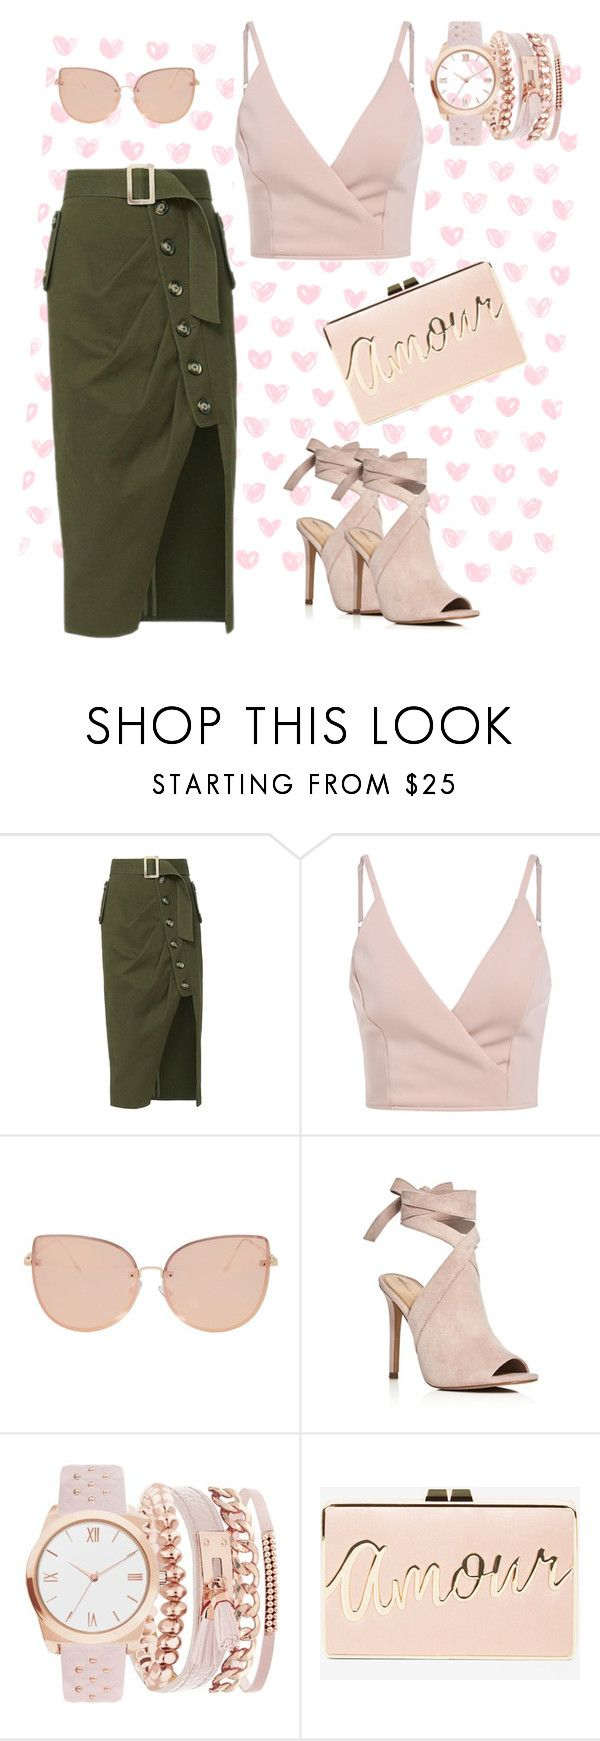 """""""on the town"""" by mushie97 ❤ liked on Polyvore featuring self-portrait, Topshop, Kendall + Kylie, A.X.N.Y. and BCBGMAXAZRIA"""